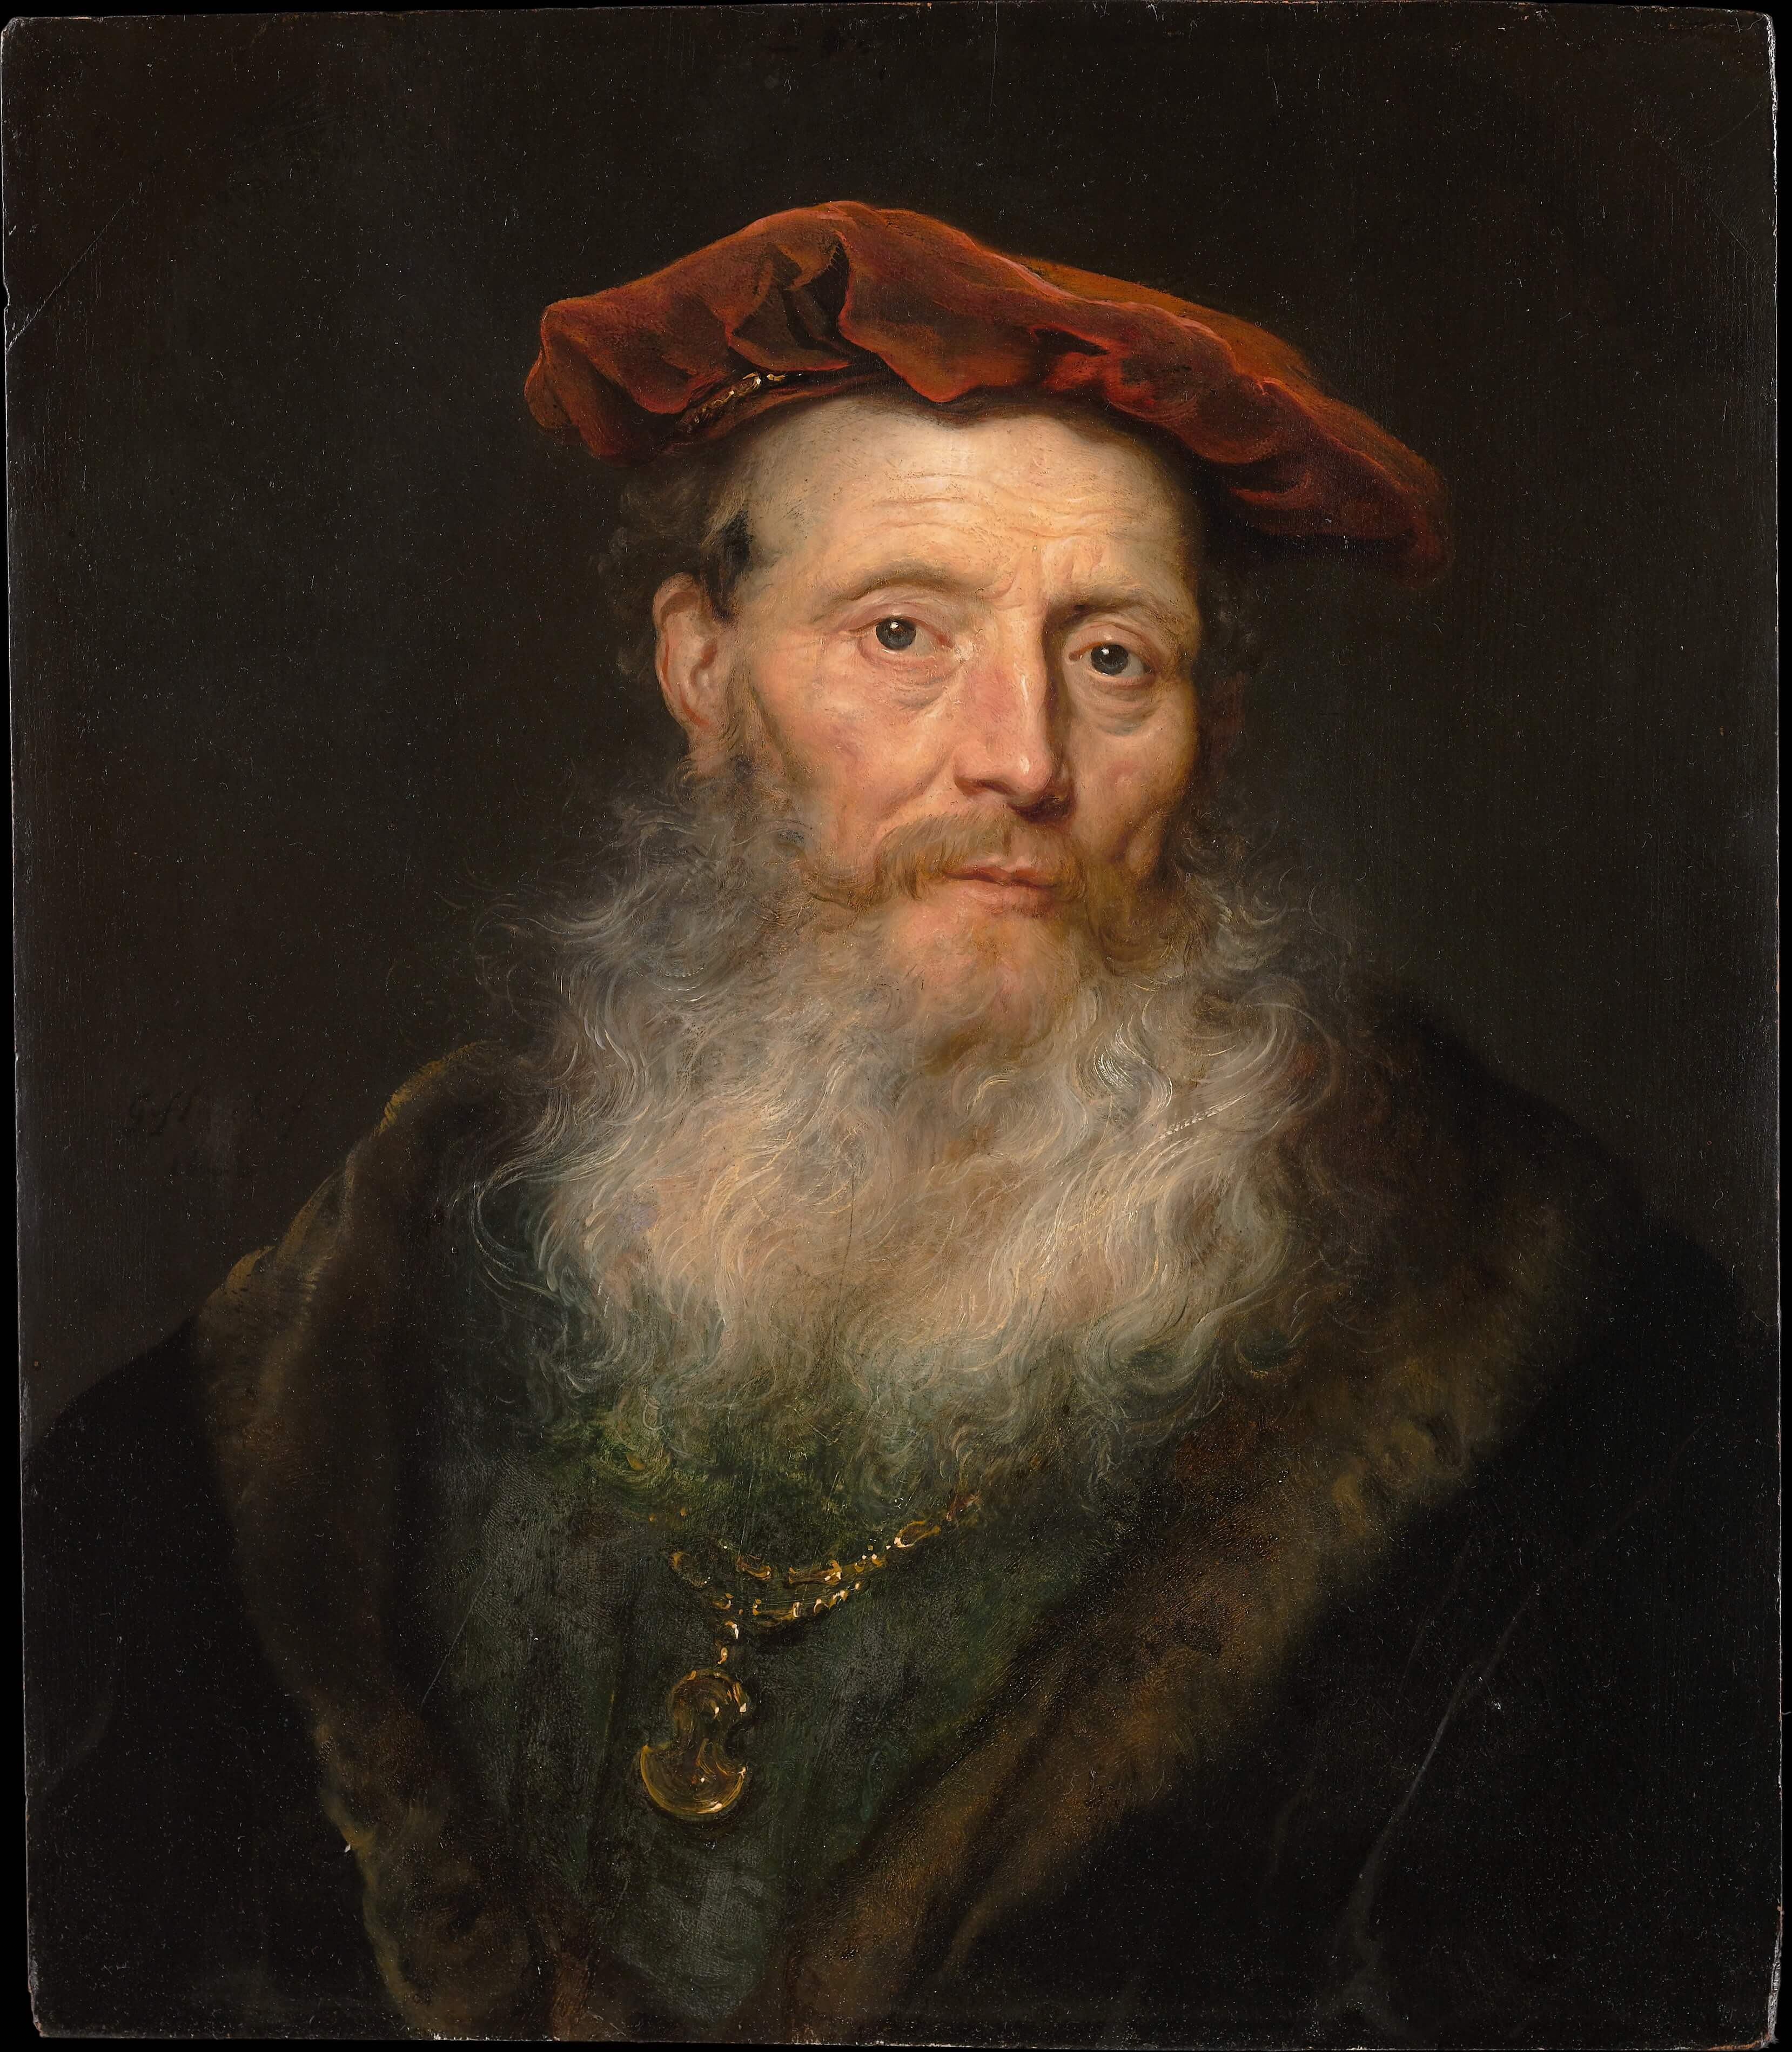 Bearded Man with a Velvet Cap by Govert Flinck Dutch Golden Age